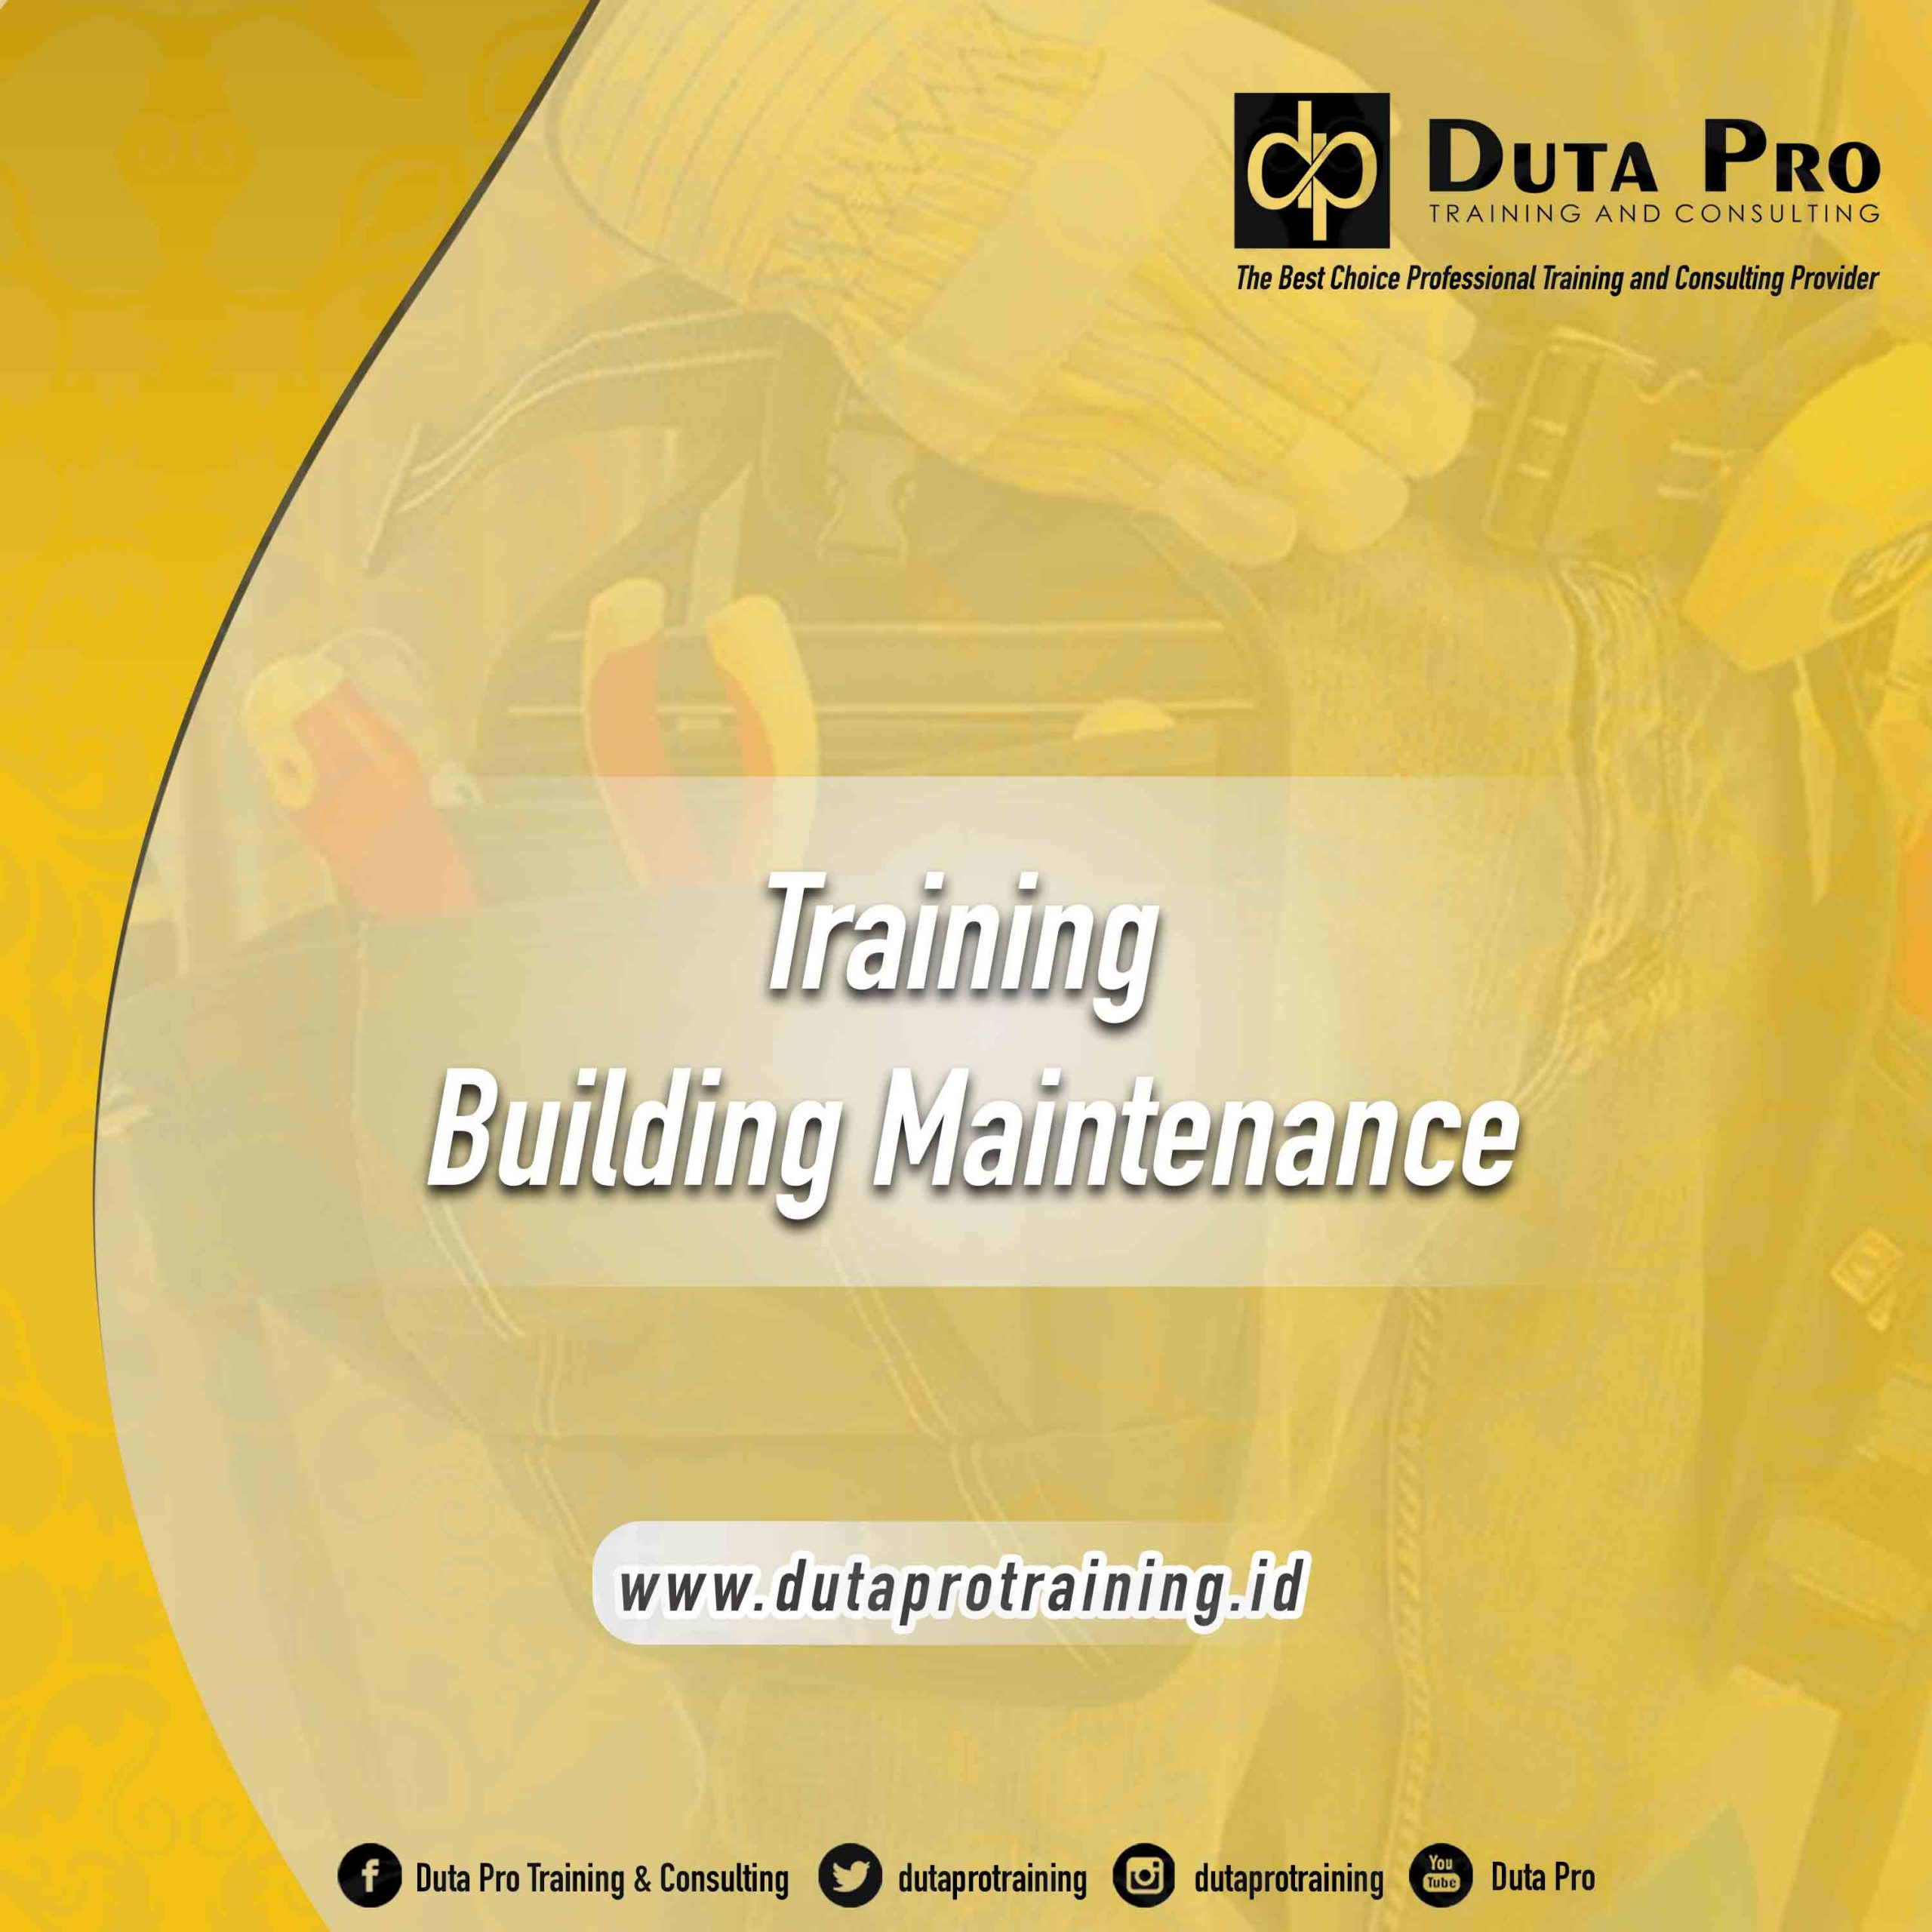 Training Building Maintenance